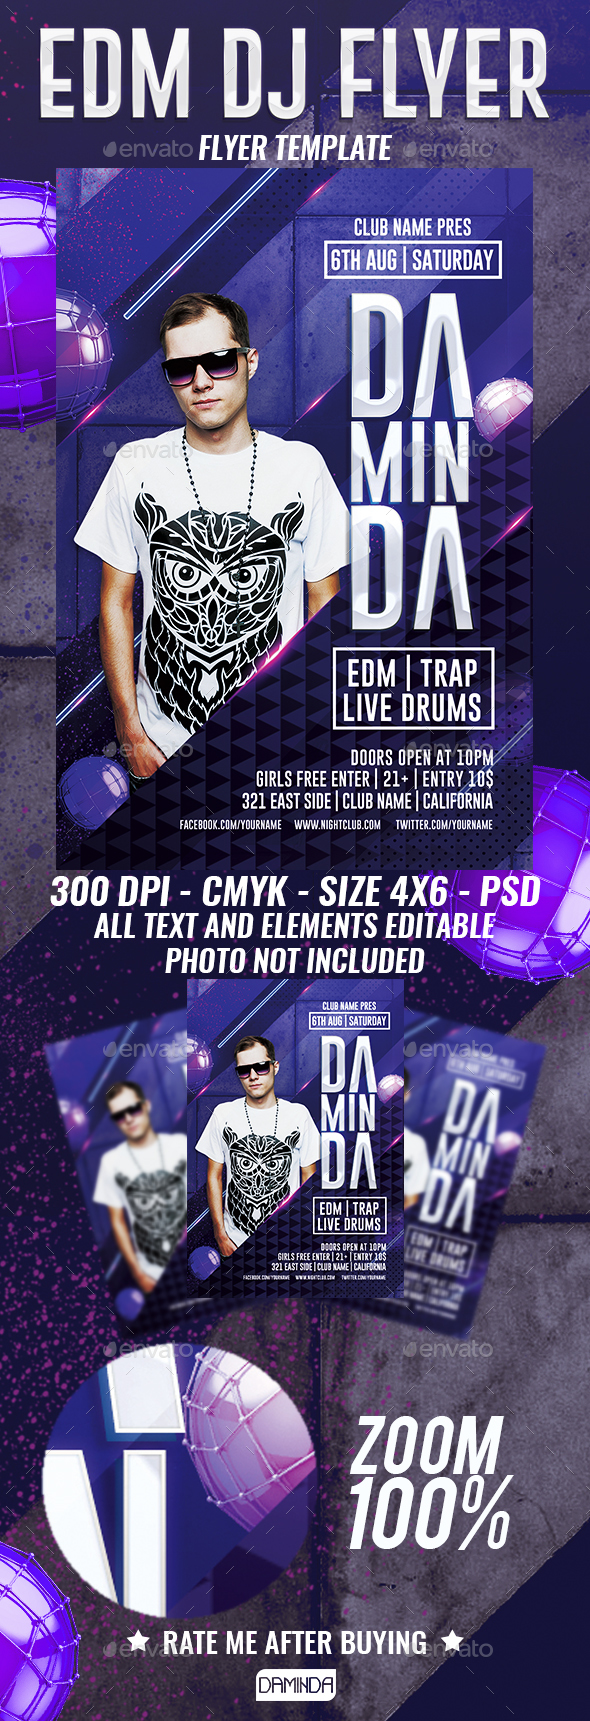 Club Dj Flyer Template by Daminda-Design | GraphicRiver